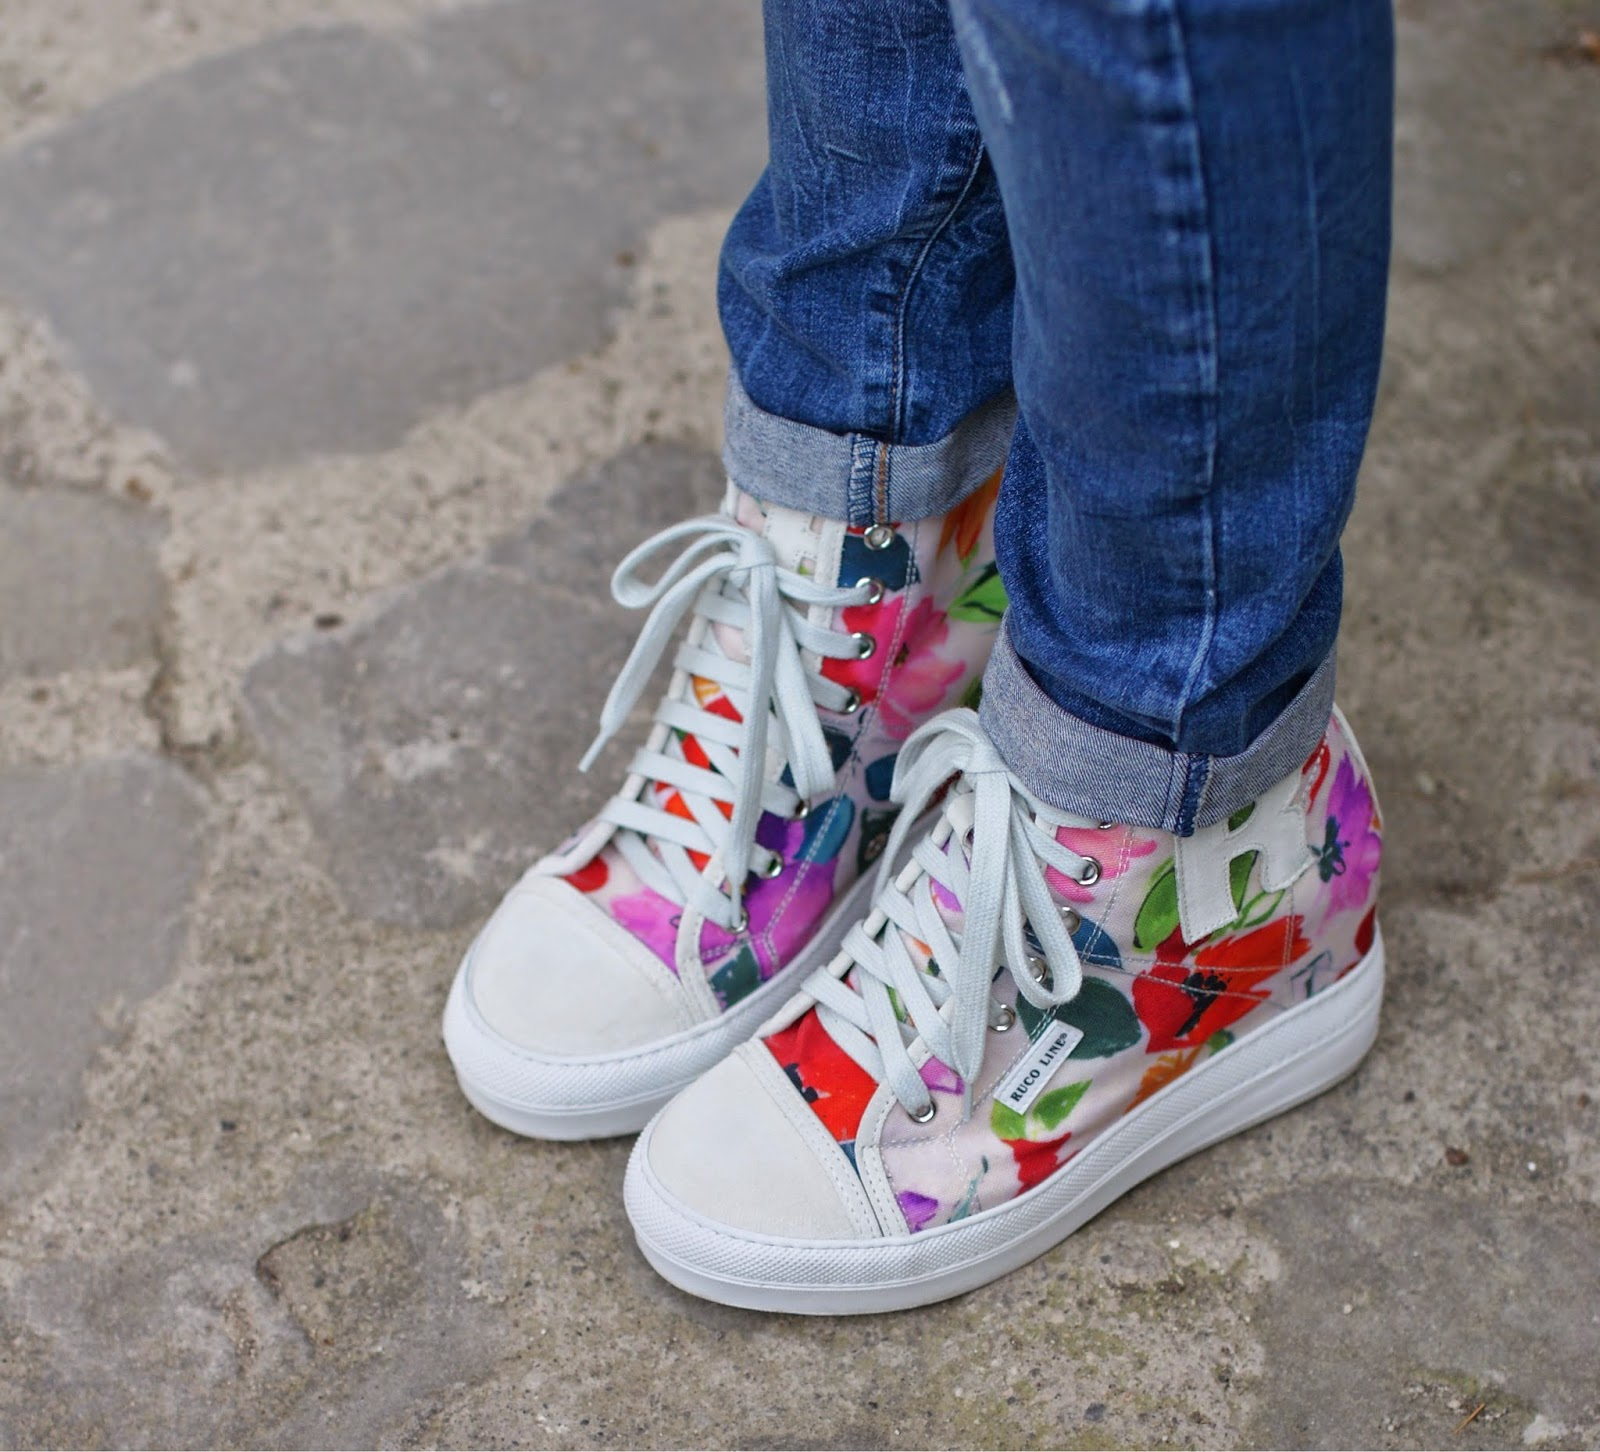 Ruco Line sneakers a fiori, Ruco Line floral sneakers, Fashion and Cookies, fashion blogger